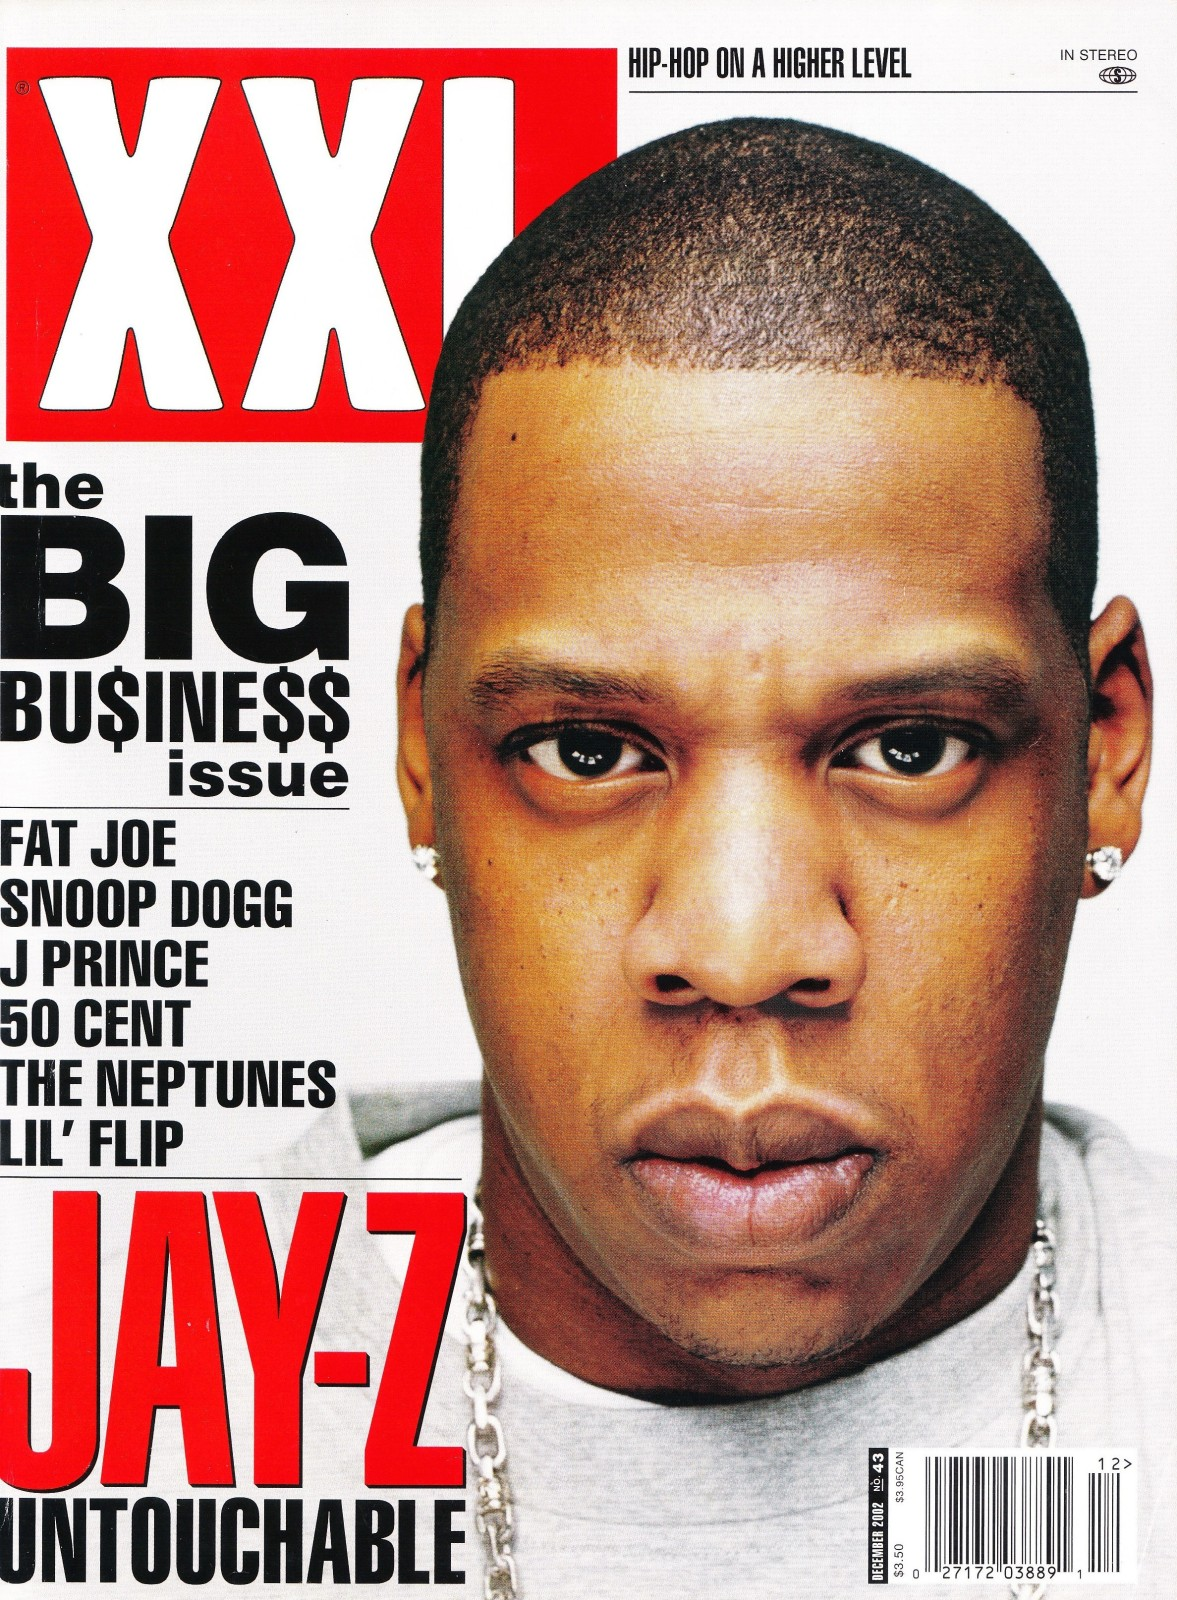 Dar hip hop jay zs the blueprint 2 the gift the curse blueprint 2 8 nigga please 9 2 many hoes 10 as one 11 a ballad for the fallen soldier 12 show you how 13 bitches and sisters malvernweather Images